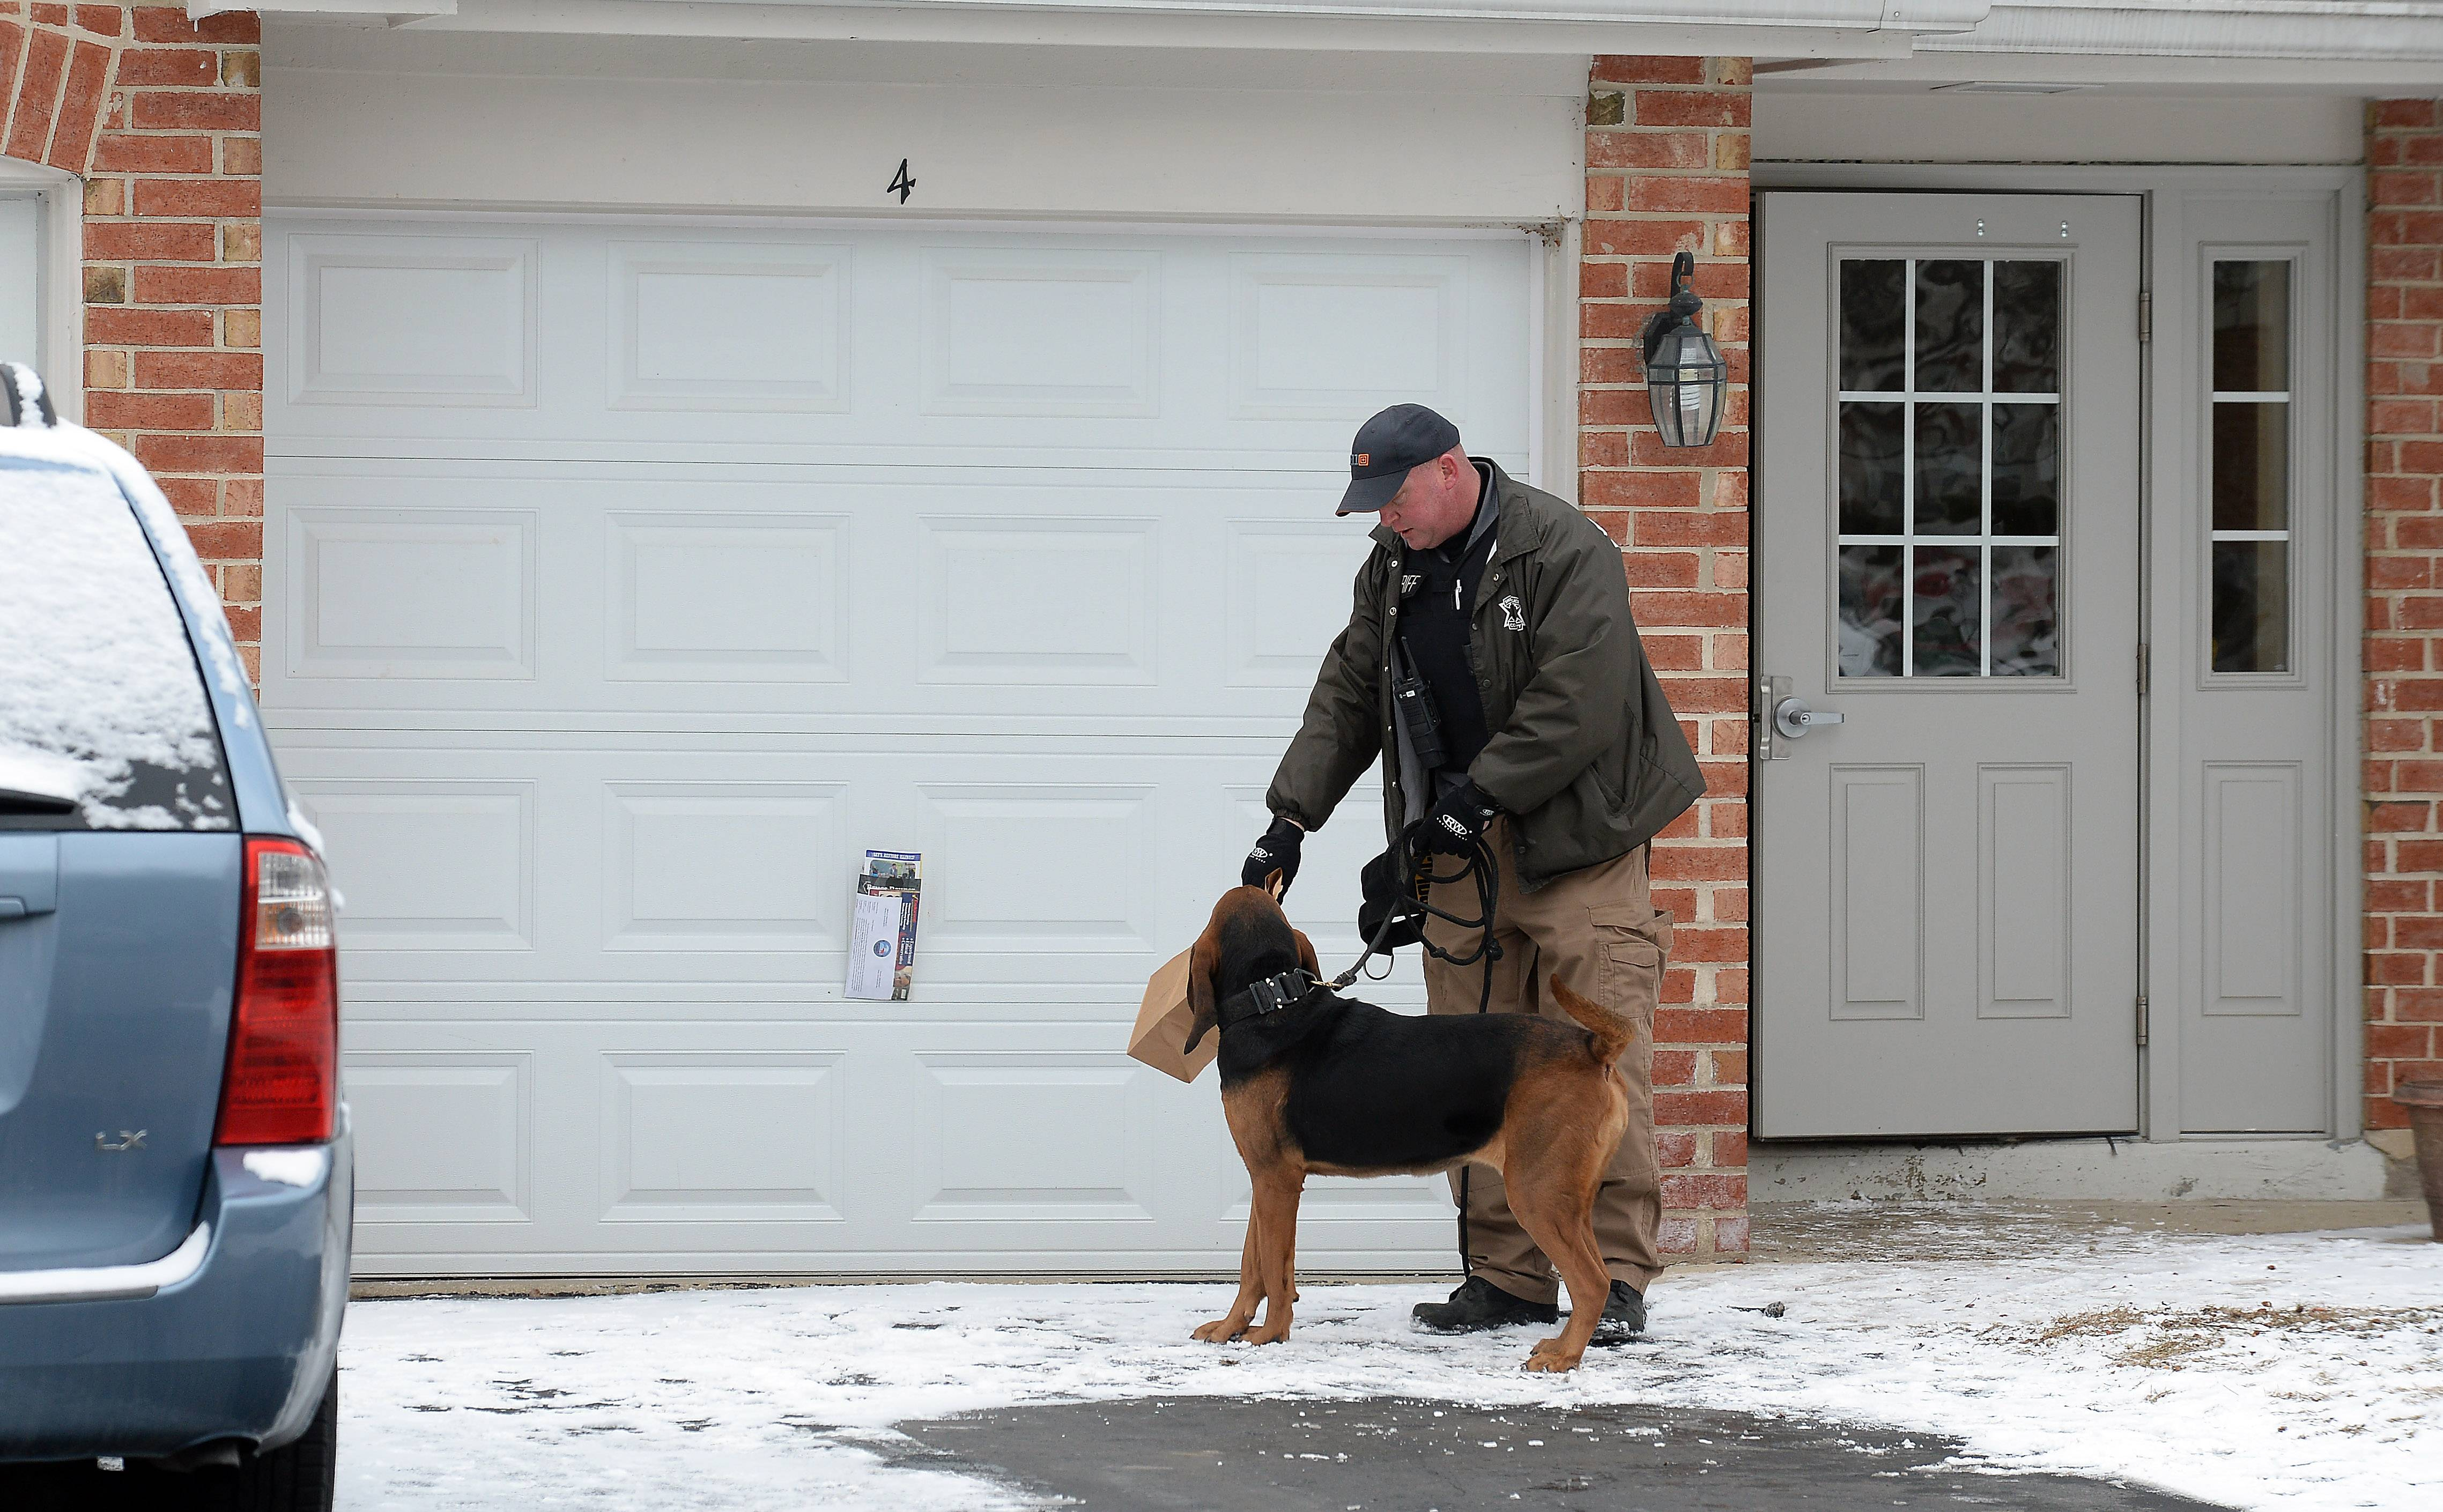 Schaumburg police and the Cook County Sheriff's K-9 unit search the area around Lawn Court near Weathersfield Way after a home invasion in the 300 block of Pembroke Lane early Tuesday morning. Here a canine officer from the sheriff's department lets the Bloodhound smell a bag of evidence in front of the site of the home invasion.